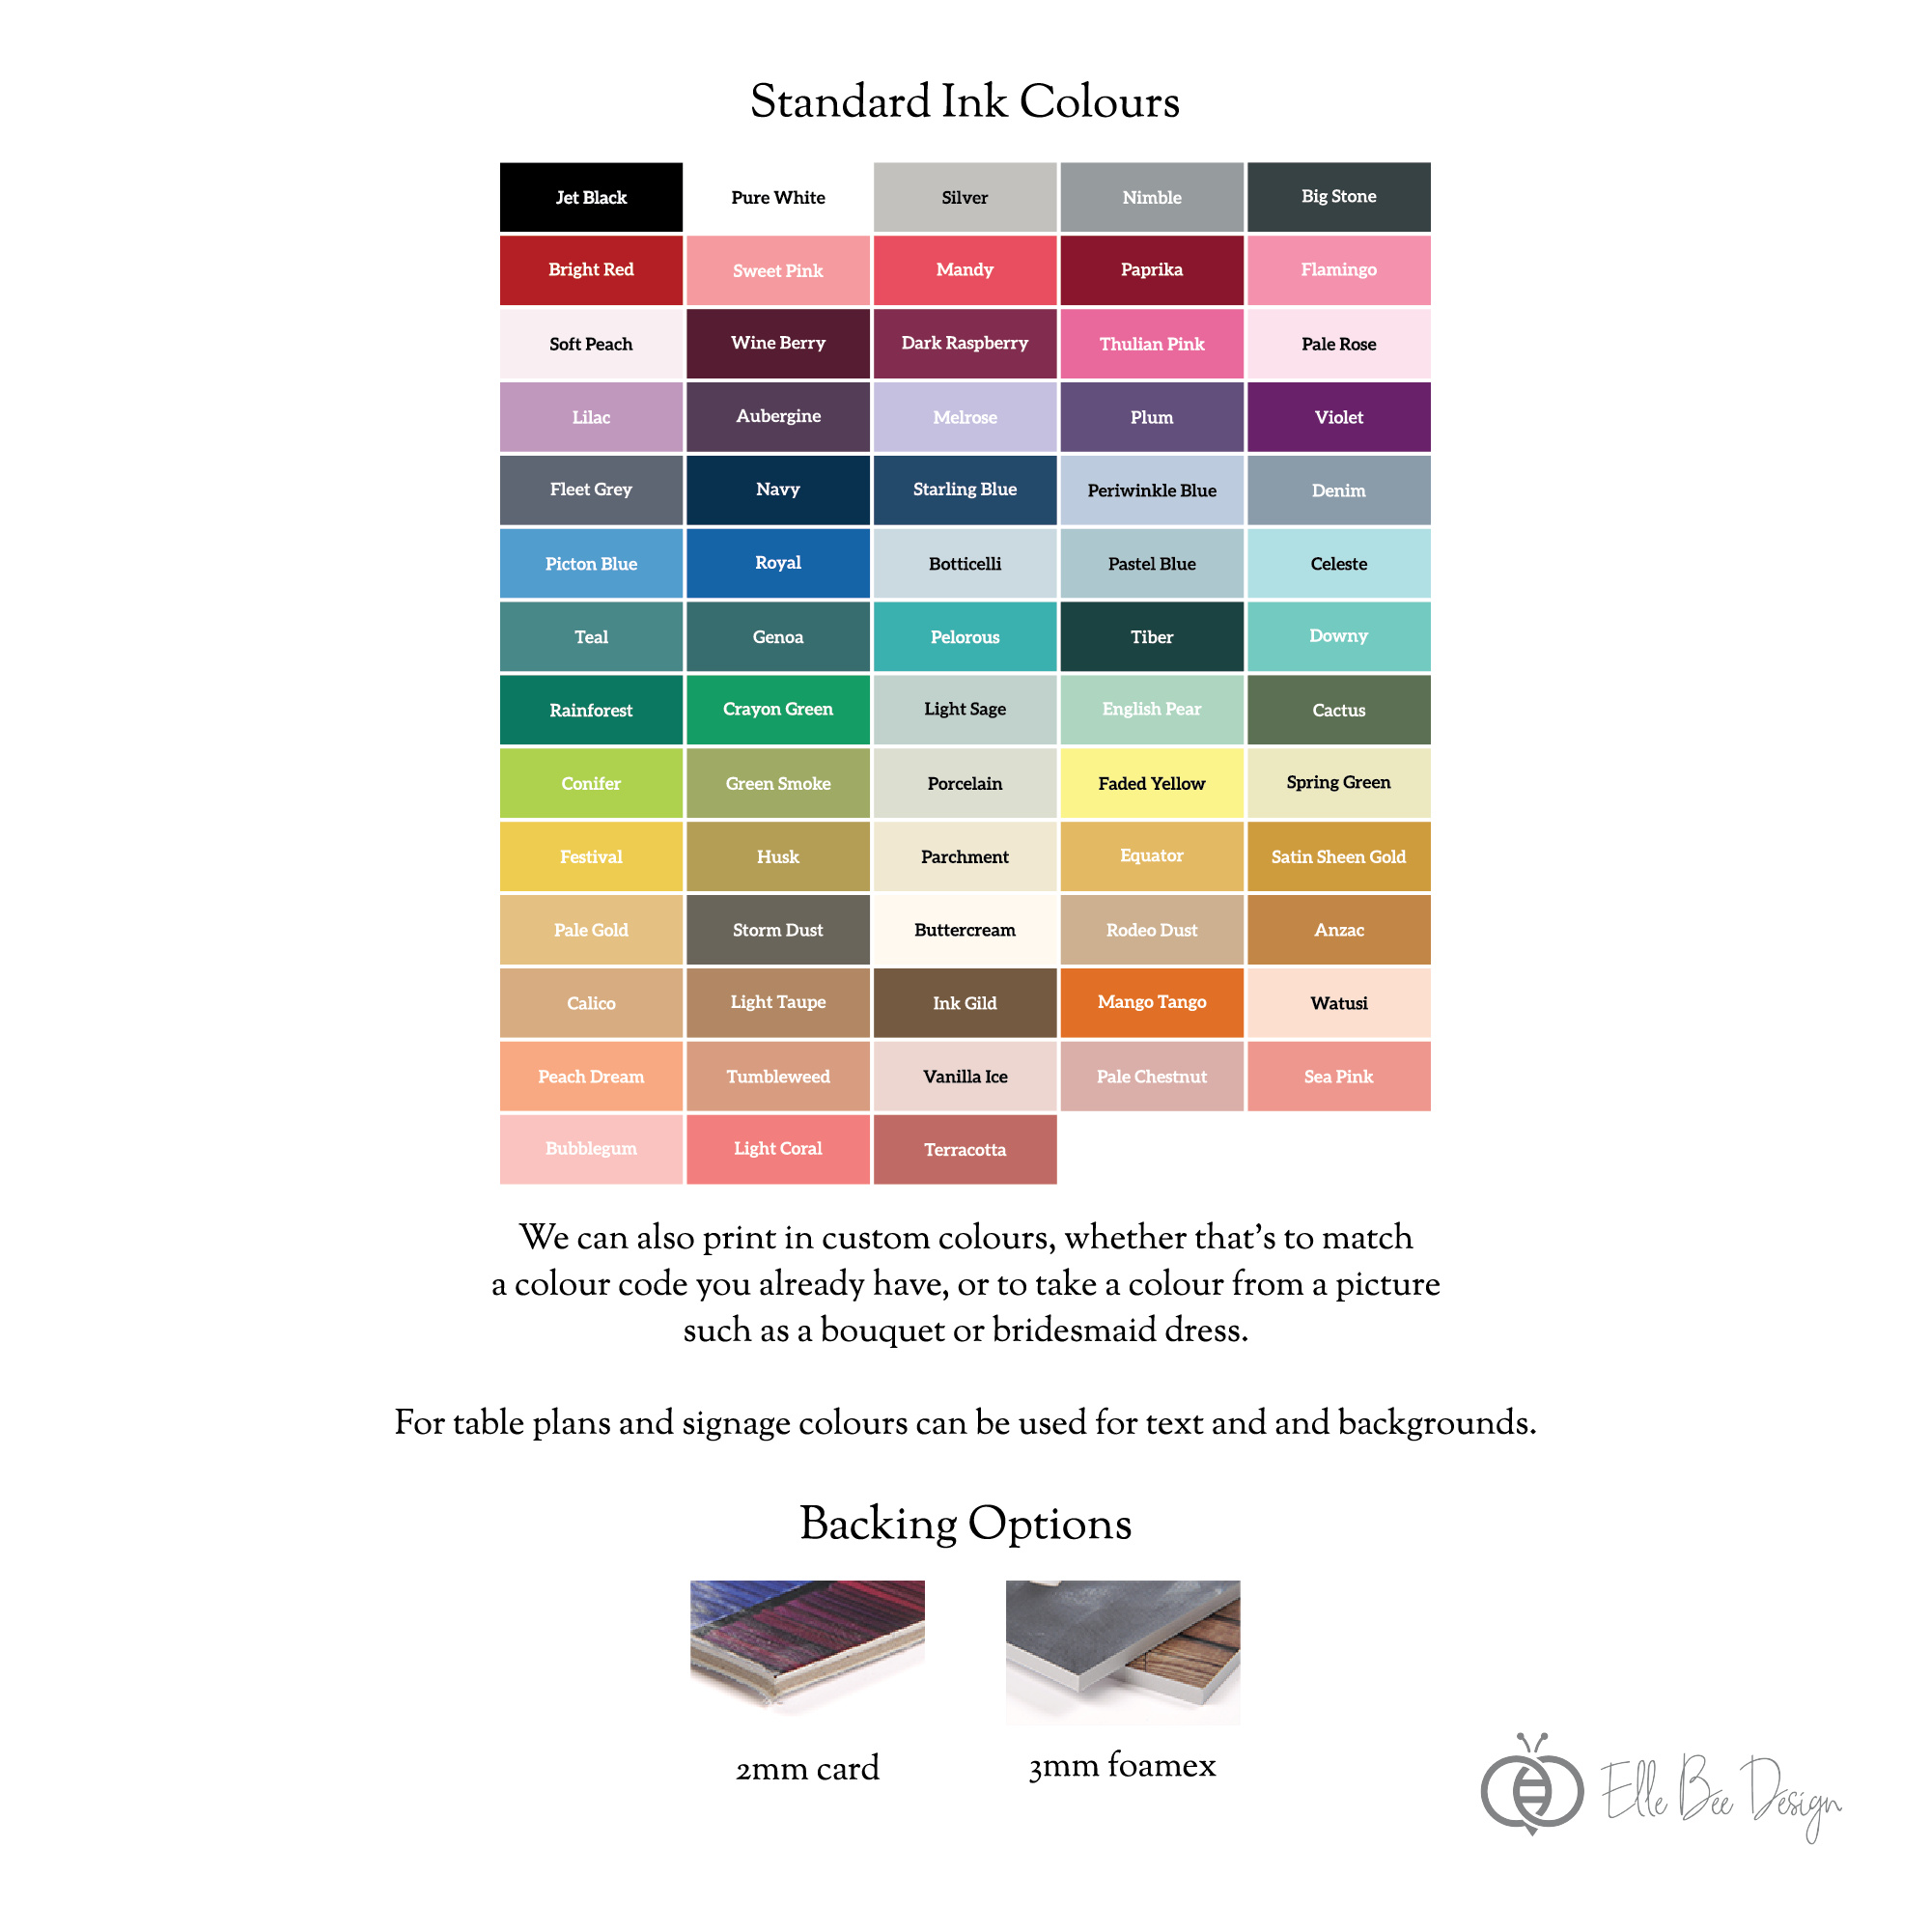 """Details - Our Table Plans are professionally printed on a two of three substrates. Text, accents, background colours and borders are all colour customisable.- Available in either A2 (420mm x 594mm / 16.5"""" x 23.4"""") or A1 (594mm x 841mm / 23.4"""" x 33.1""""). A0 available upon request.- Discounted bundle available with either or both of a welcome sign and order of the day- Can be printed on 2mm card or 3mm foamex- A2 table plan includes welcome banner, top table and up to 8 tables- A1 table plan includes welcome banner, top table and up to 15 tables- Can be printed with table numbers or custom names- Choice of 60+ colours for printing- One-on-one design with comprehensive digital proofing process- Easel not supplied"""